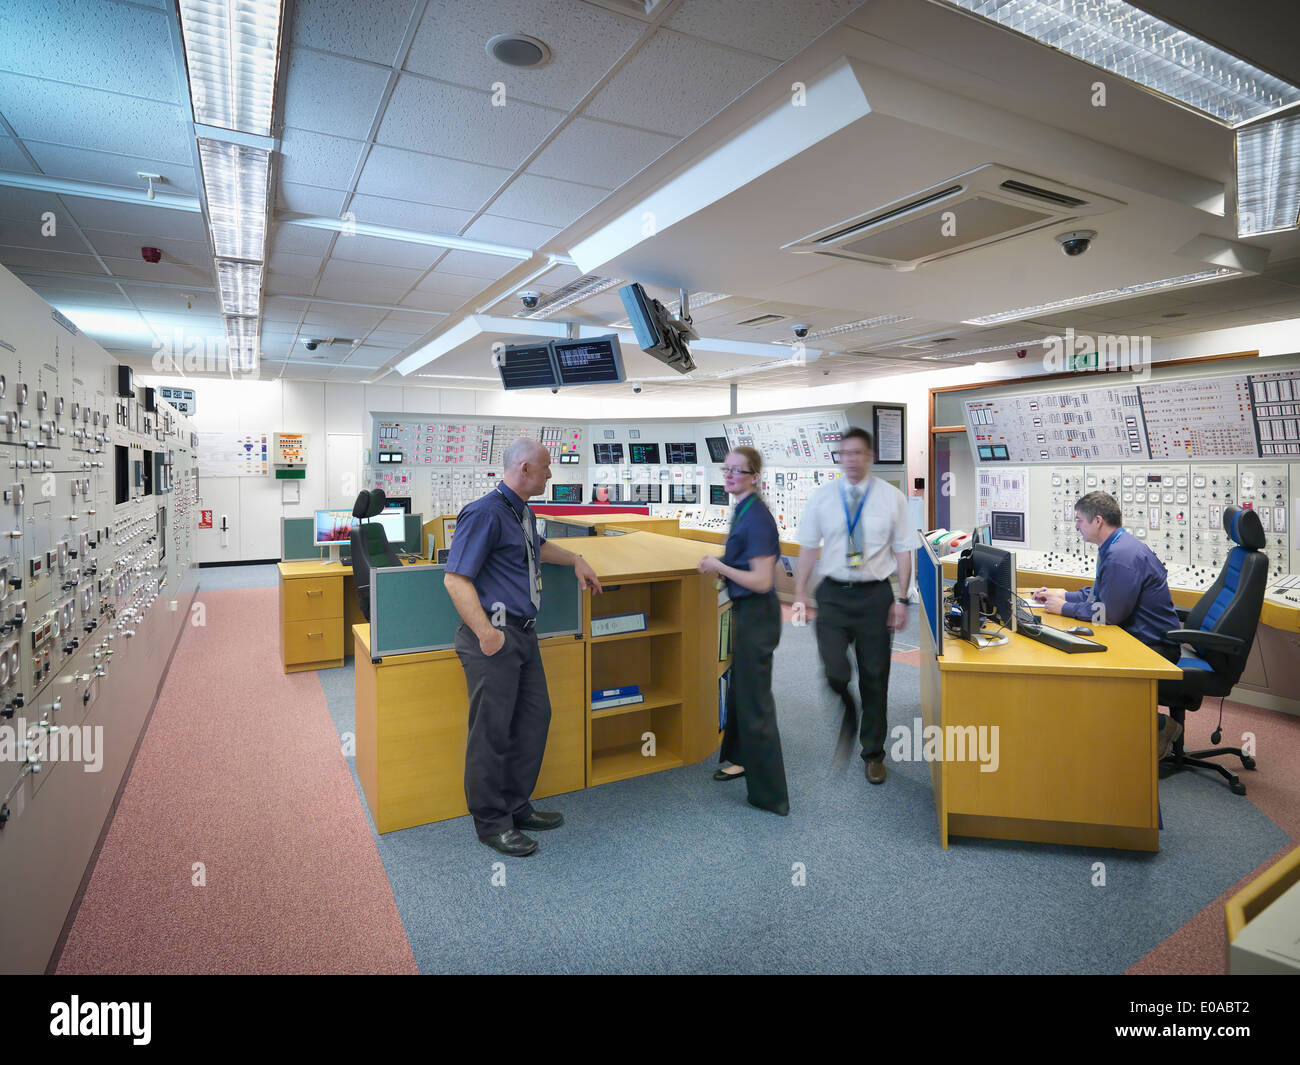 Engineers working in nuclear power station control room simulator - Stock Image